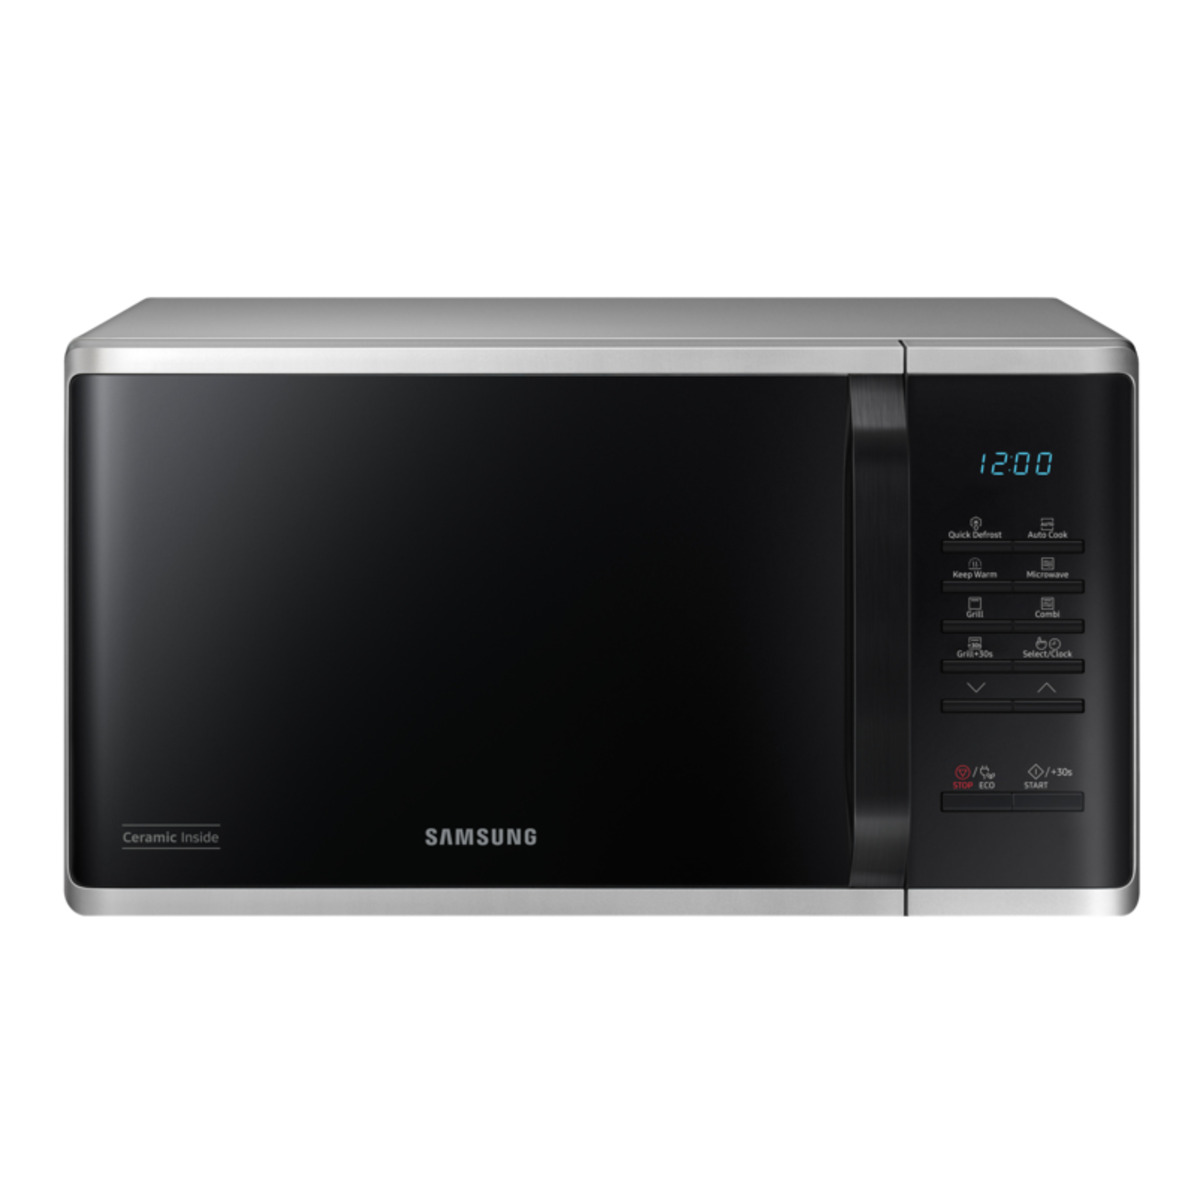 8801643691660-samsung-microonde-mg23k3513as-con-grill-capacita-23-l-800-w-argento